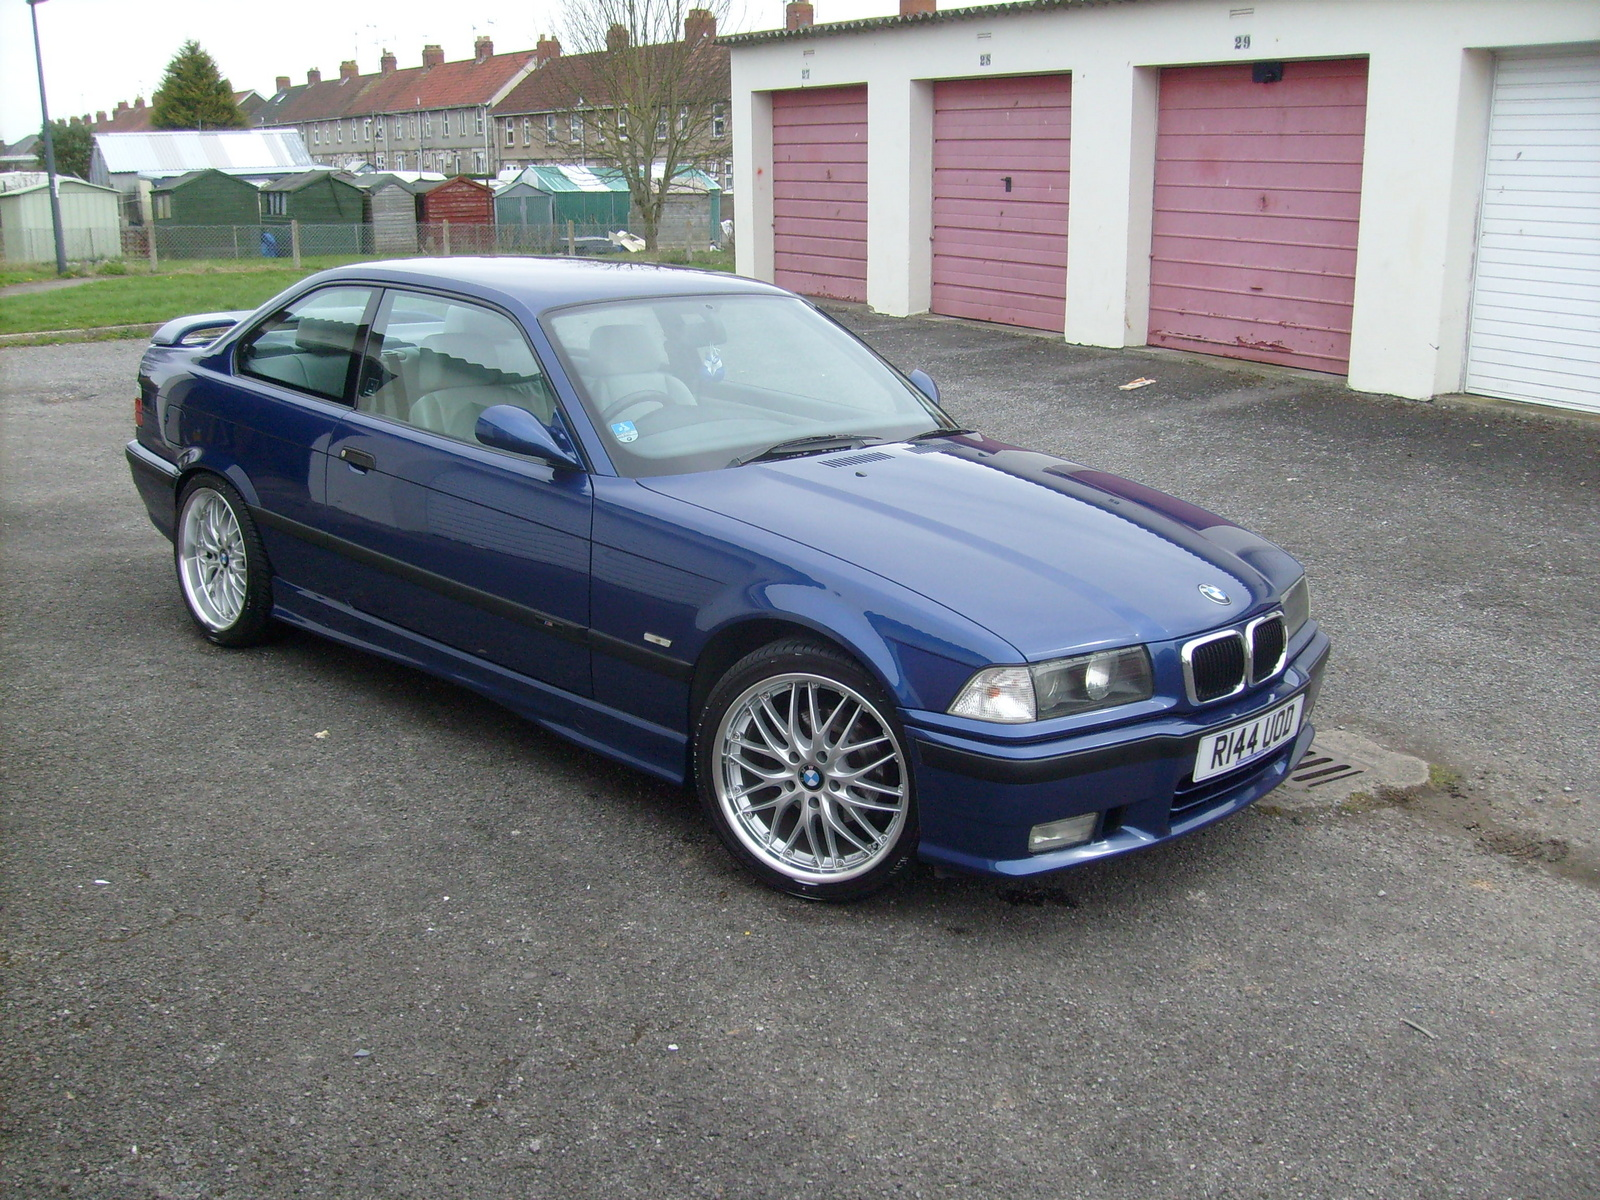 BMW 328iS 1998 photo - 3